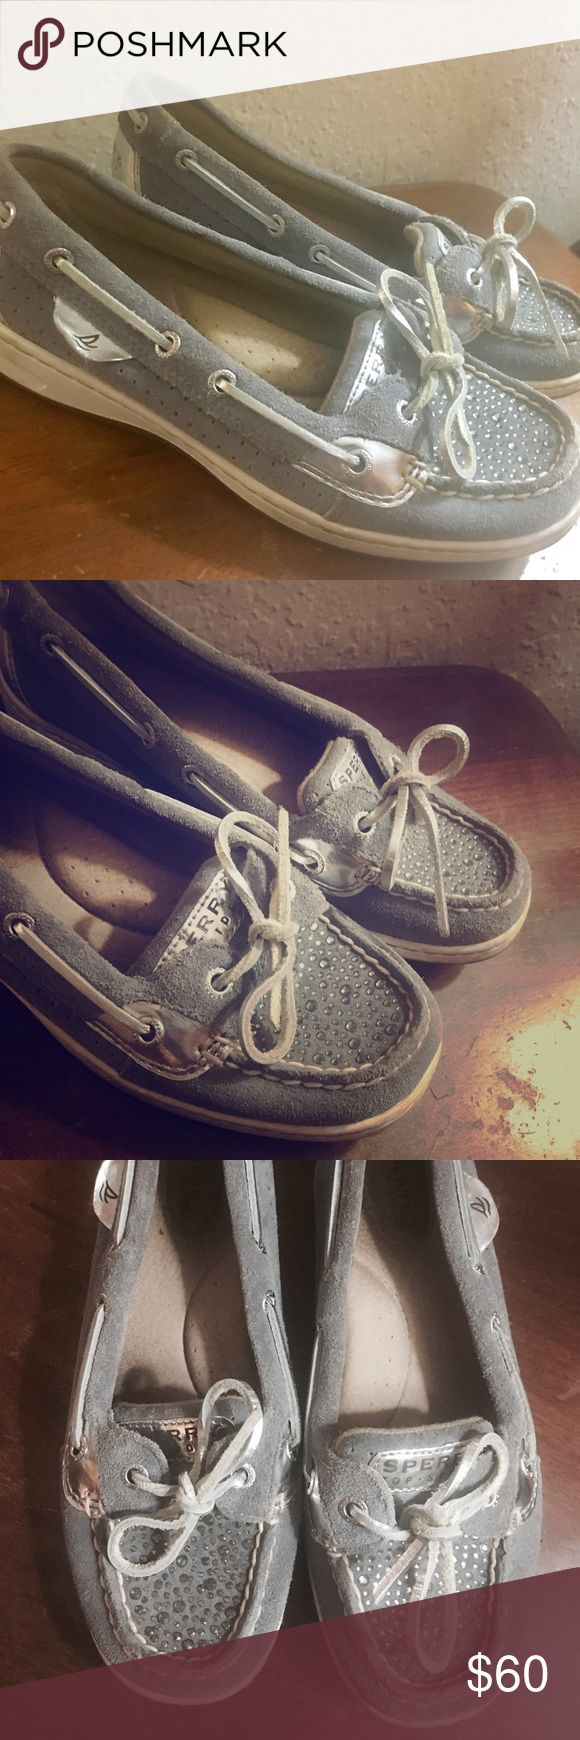 Sperry Grey Sparkle Boat Shoes Excellent condition • Only worn twice • Comfy and look super cute on • Ready for a new home ✨ Reasonable offers accepted • No trades please Sperry Shoes